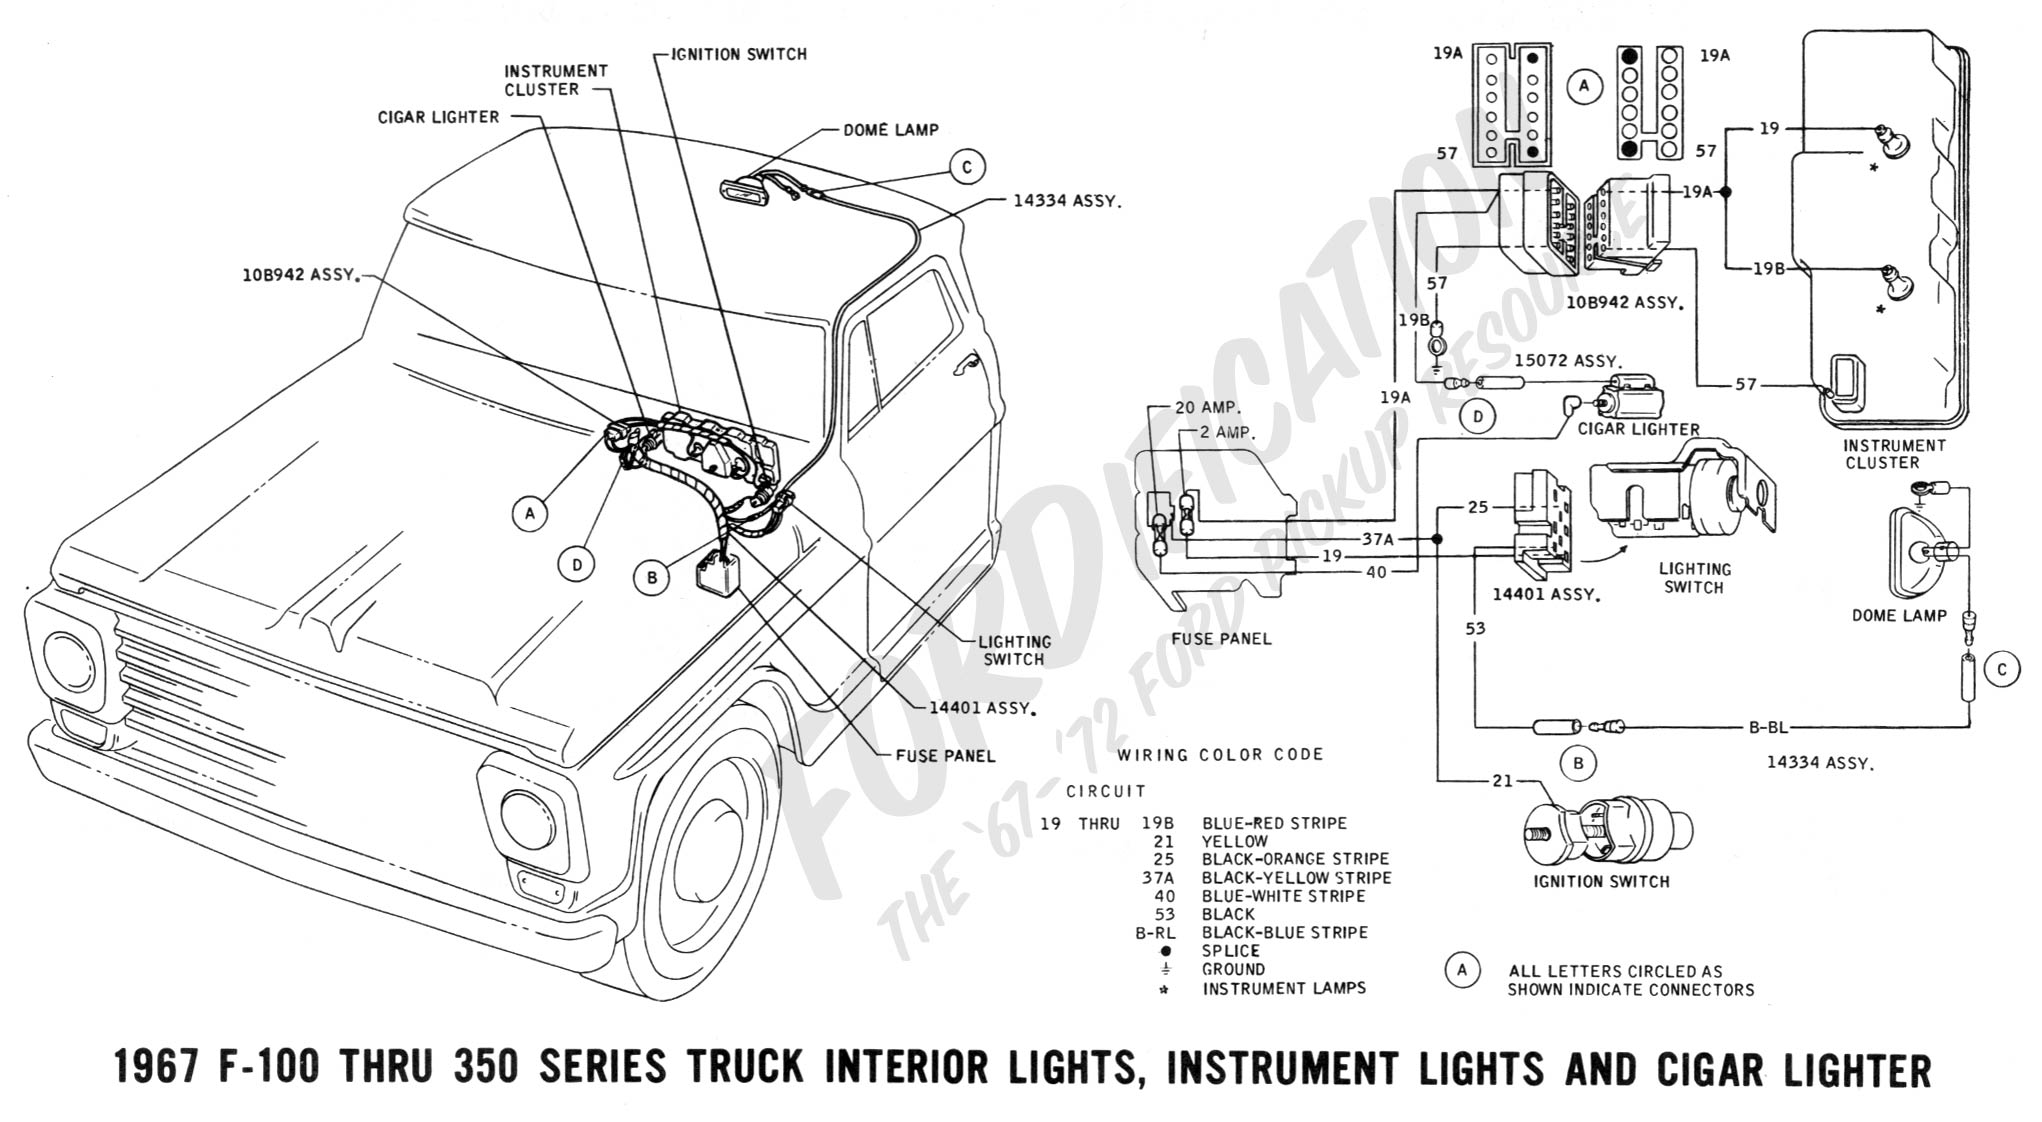 wiring 1967interiorlights wiring diagram for 6 4 ford wipers ford 4 6 engine swap wiring Chevrolet 350 Wiring Diagram at gsmportal.co